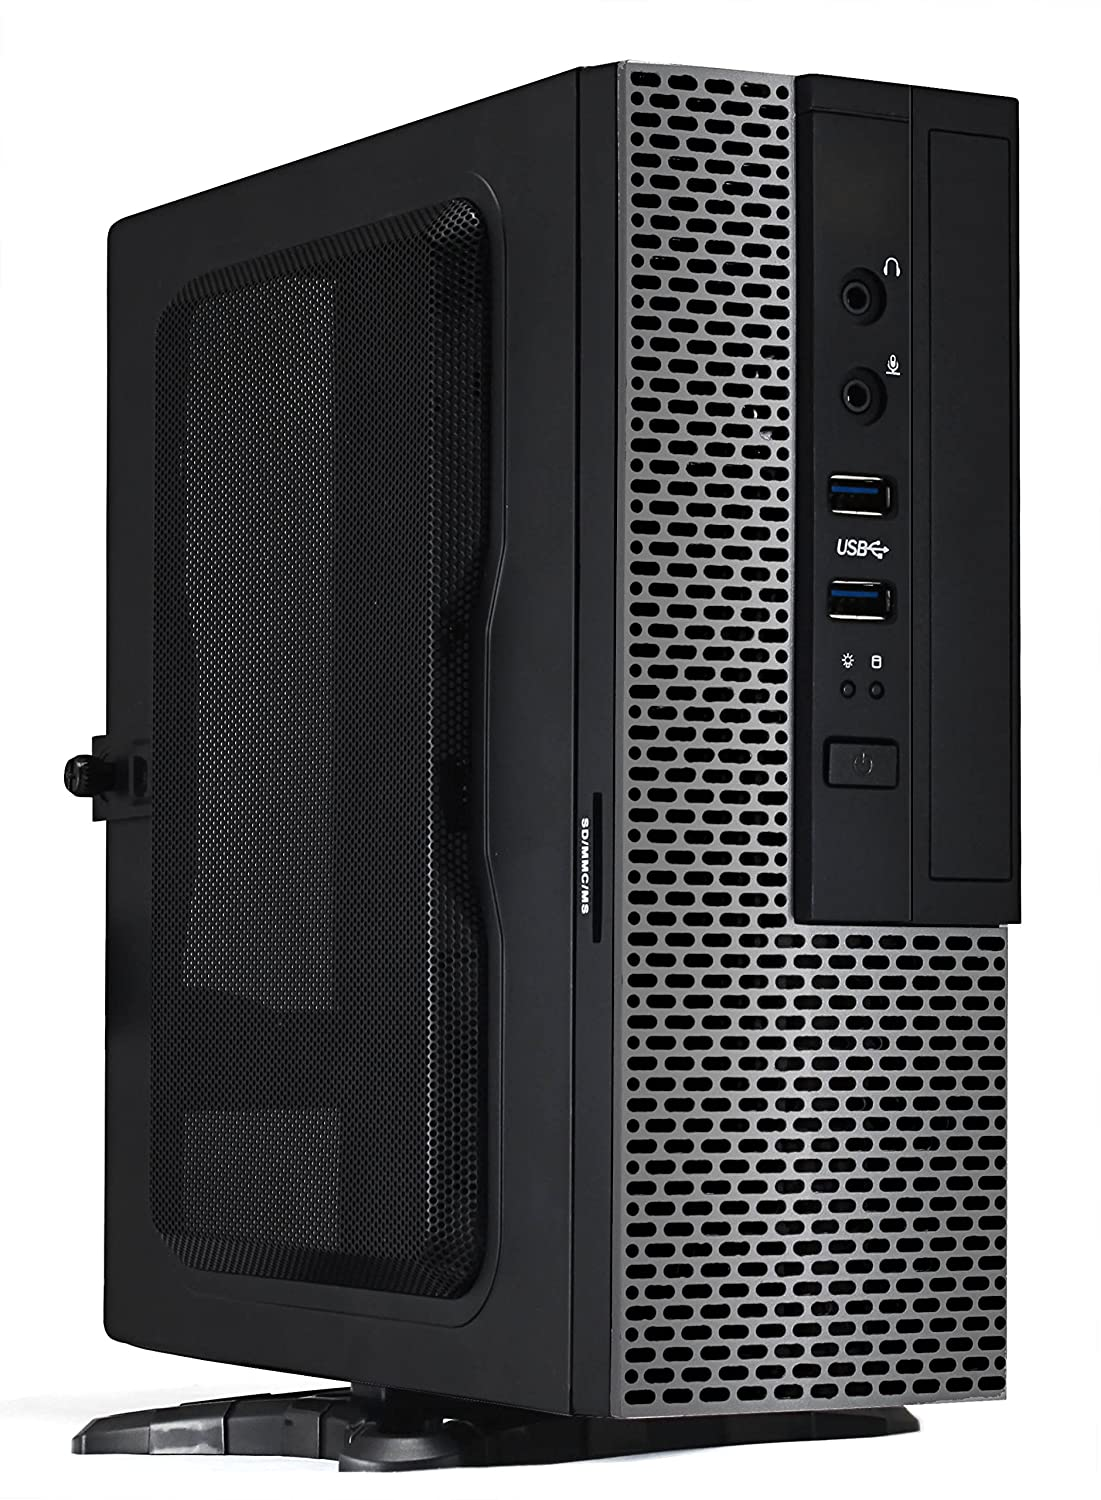 CoolBox IT05 Torre - Caja de ordenador (180W, PC, Mini-ITX,...